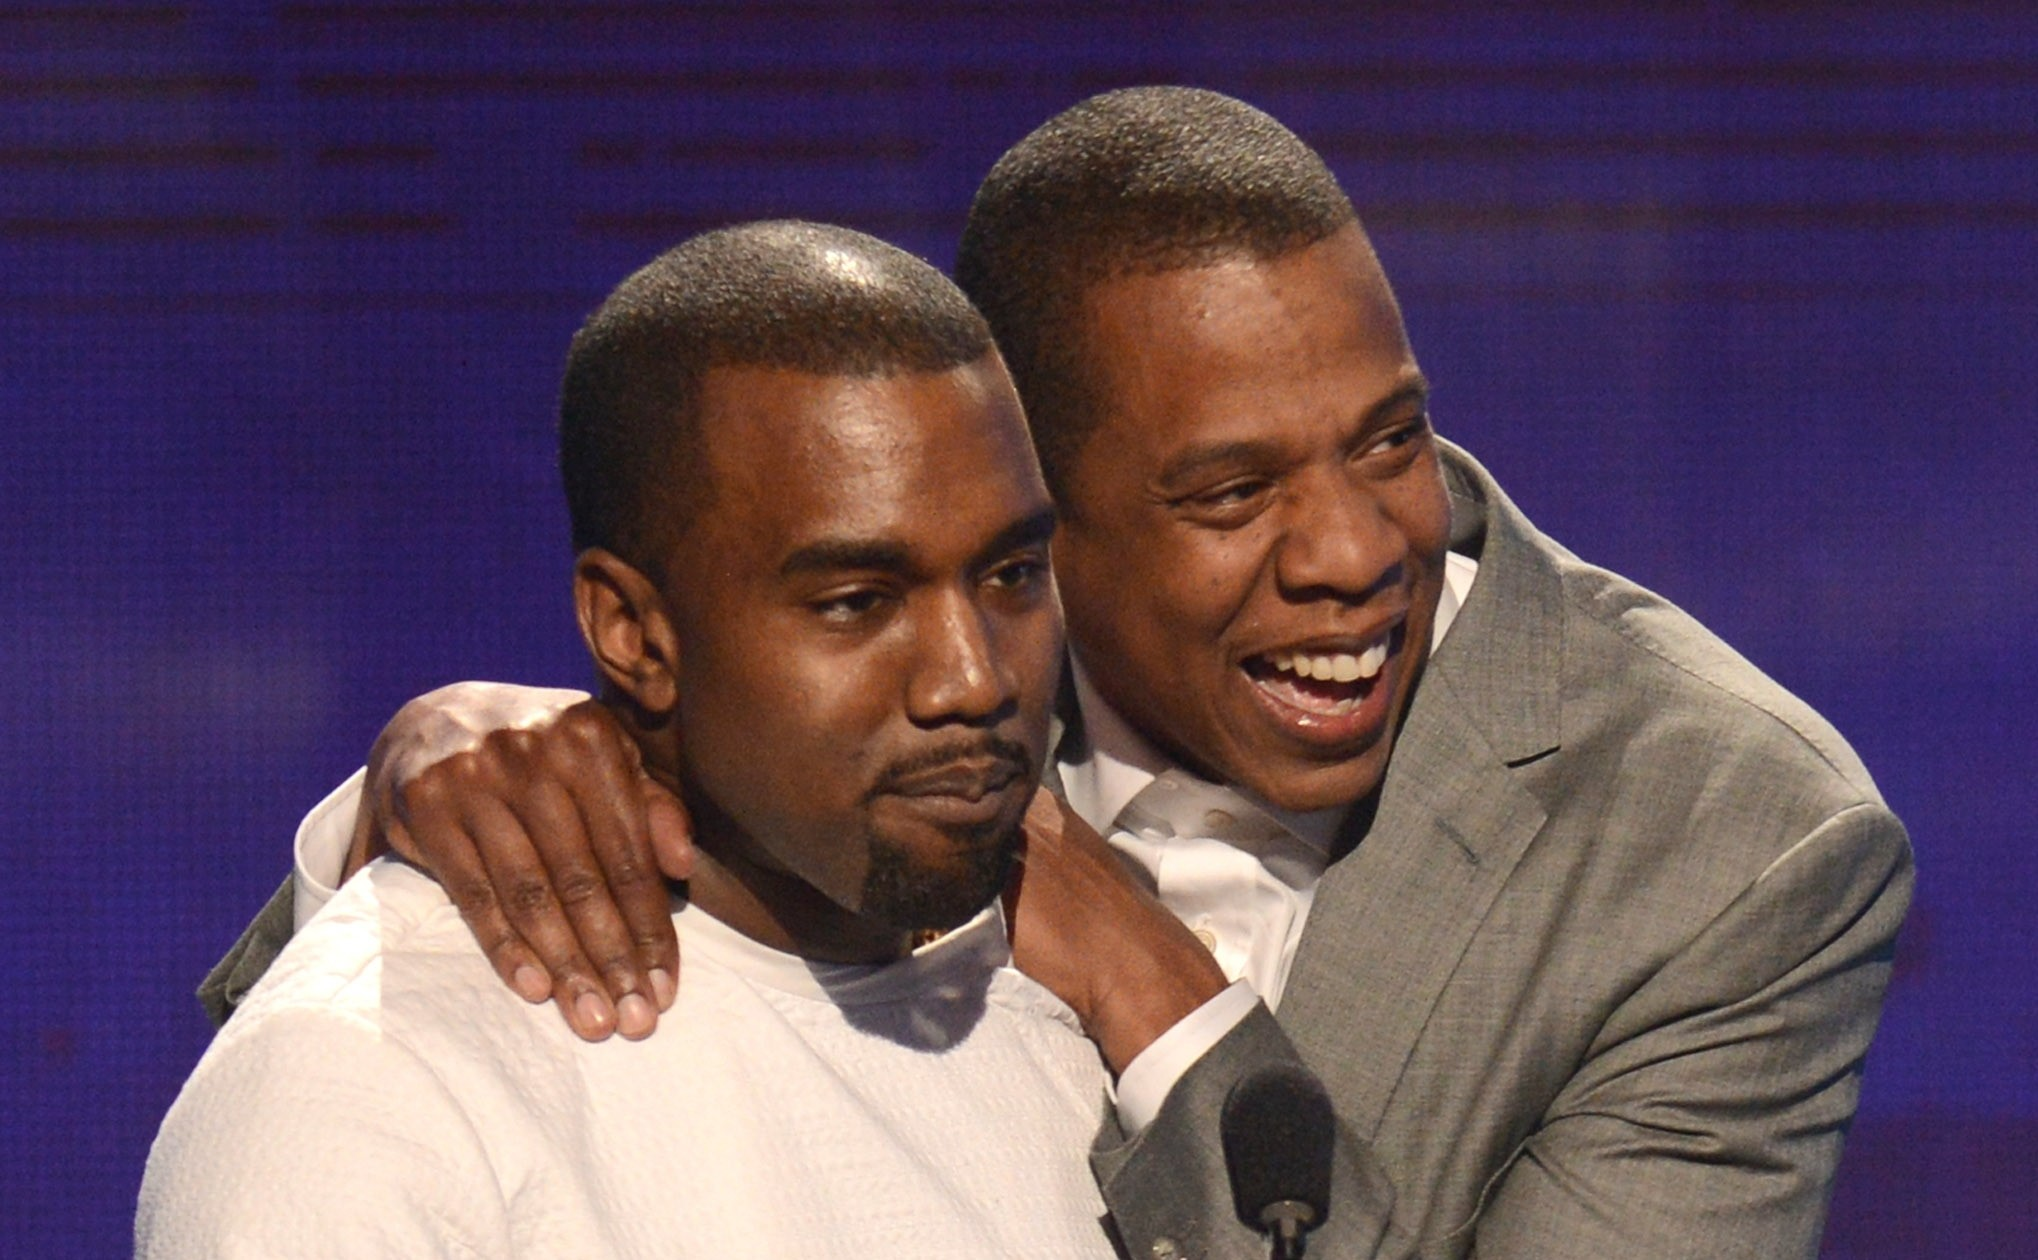 Jay-Z says 'I DO'!  Rapper WILL be best man at Kanye's wedding to Kim Kardashian after all, according to reports